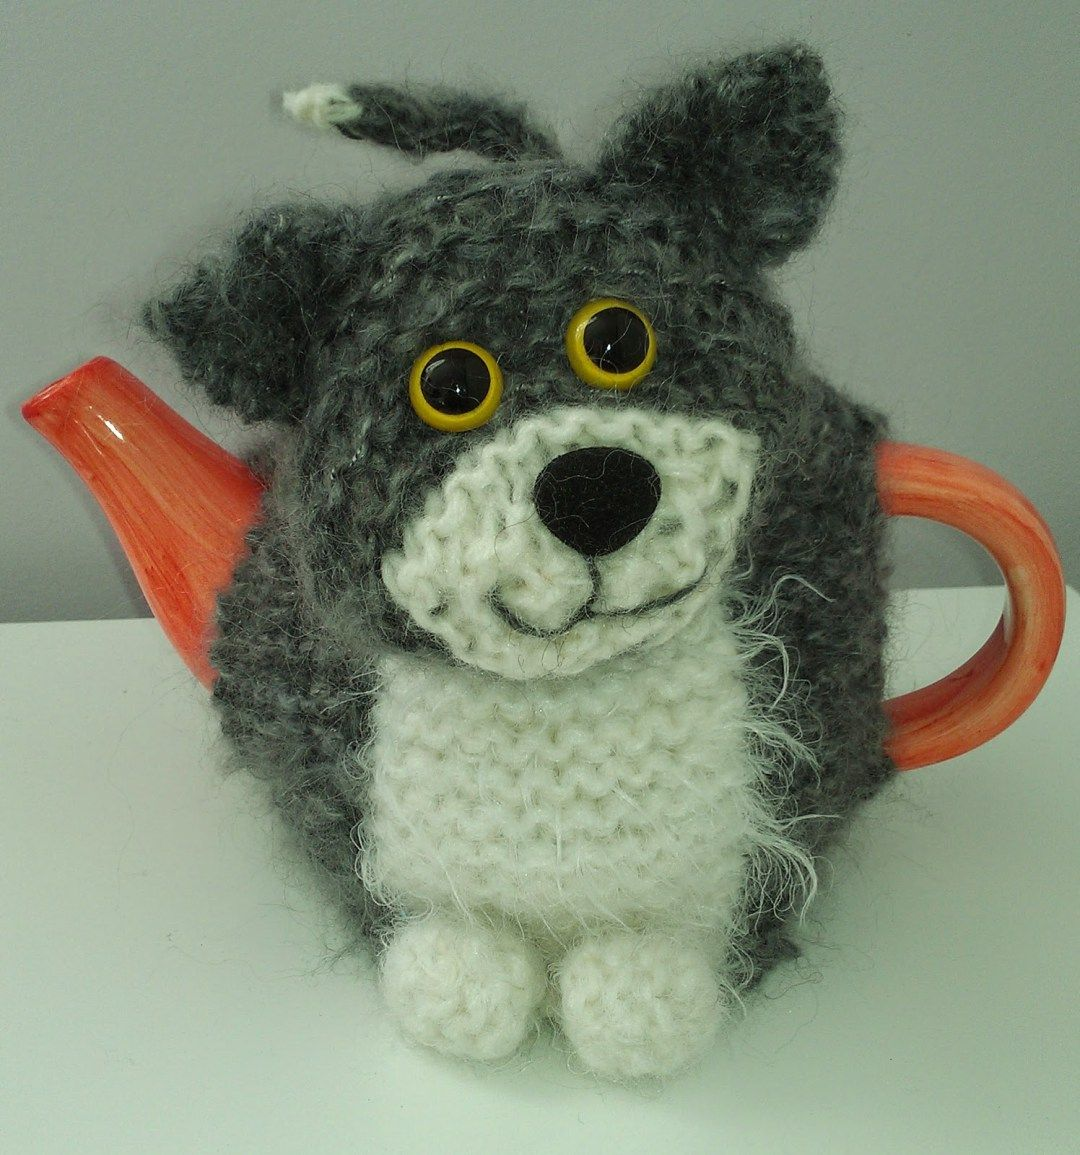 Free knitting pattern for oliver cat teapot cozy interieur free knitting patten for oliver cat teapot cozy though he looks kind of like a dog to me craft a cure for cancer free tea cosy patterns animal tea bankloansurffo Choice Image